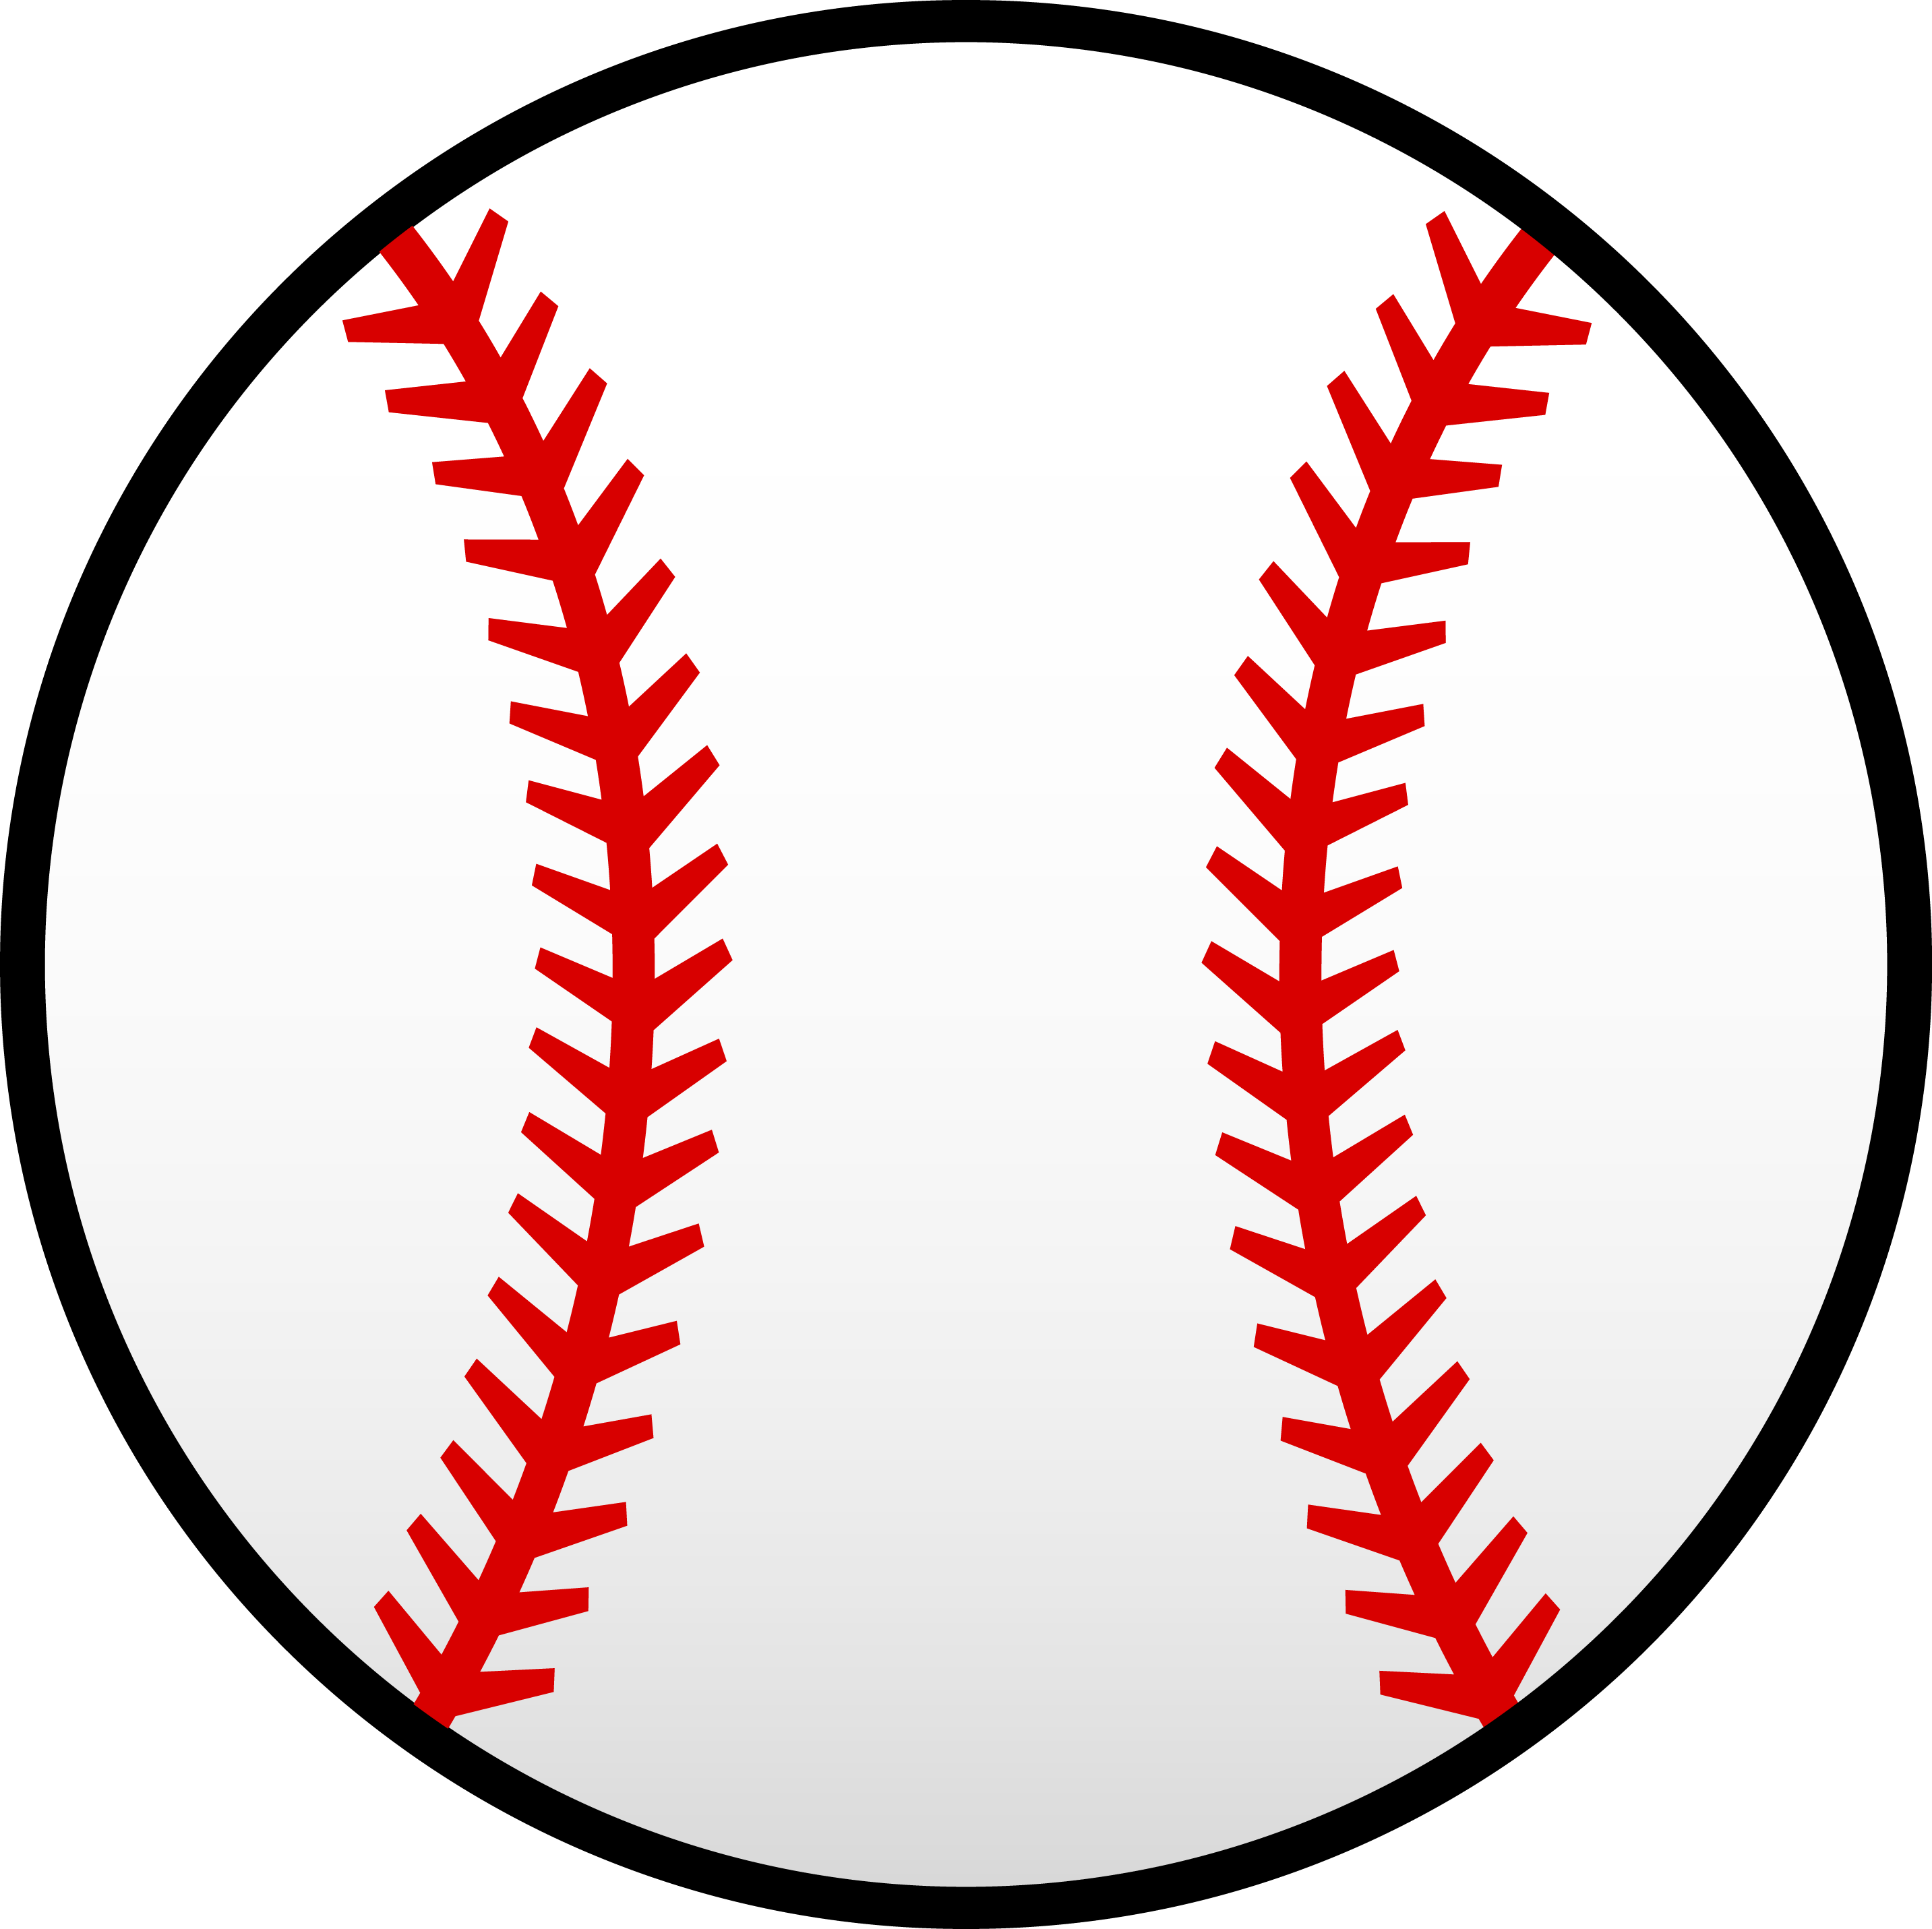 clip free  collection of stripes. Rustic clipart baseball.